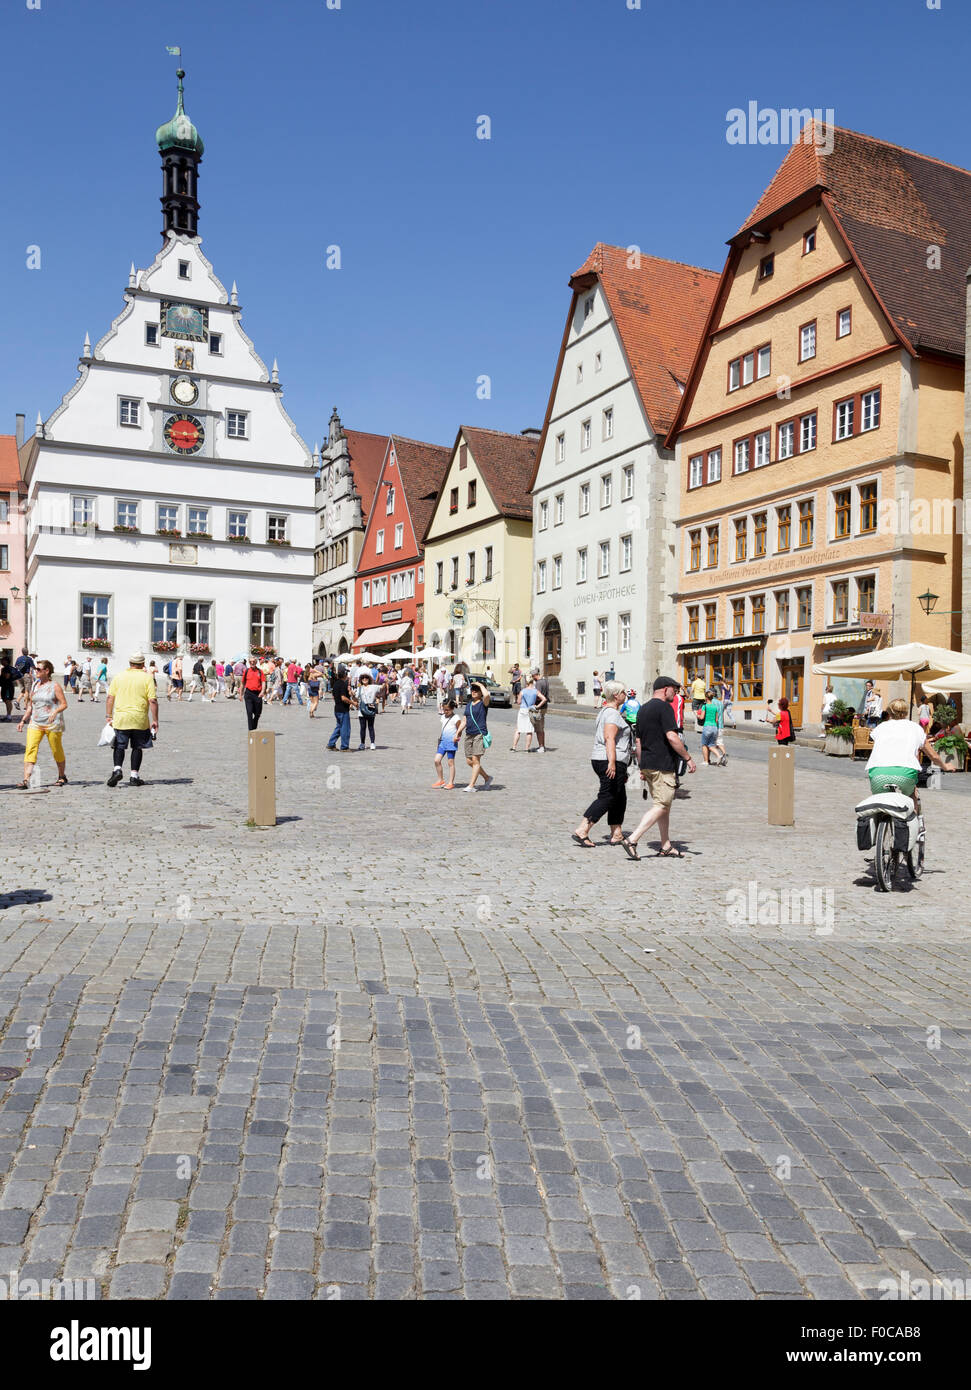 Tourists walking by typical buildings on the Marktplatz  Market Square, Rothenburg ob der Tauber, Franconia, Bavaria, - Stock Image